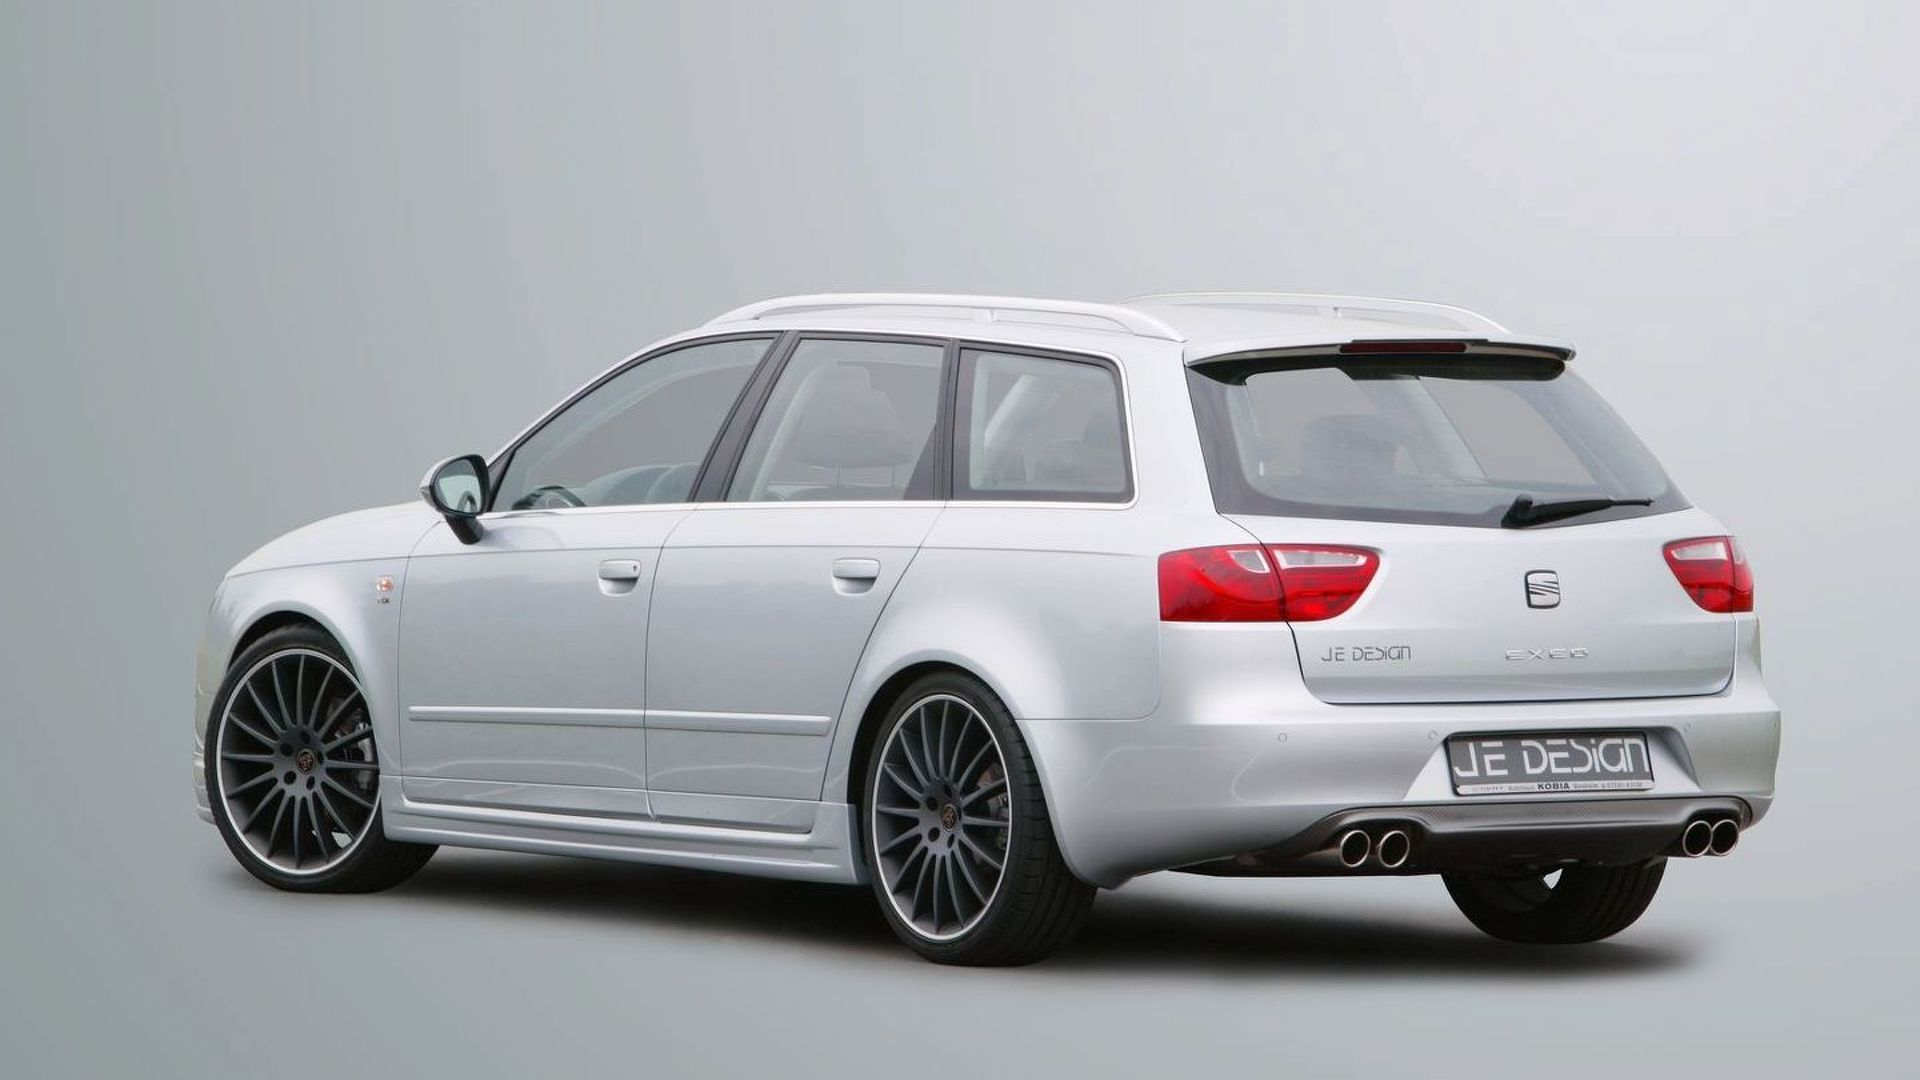 Hedendaags JE Design releases SEAT Exeo ST details and photos VU-94